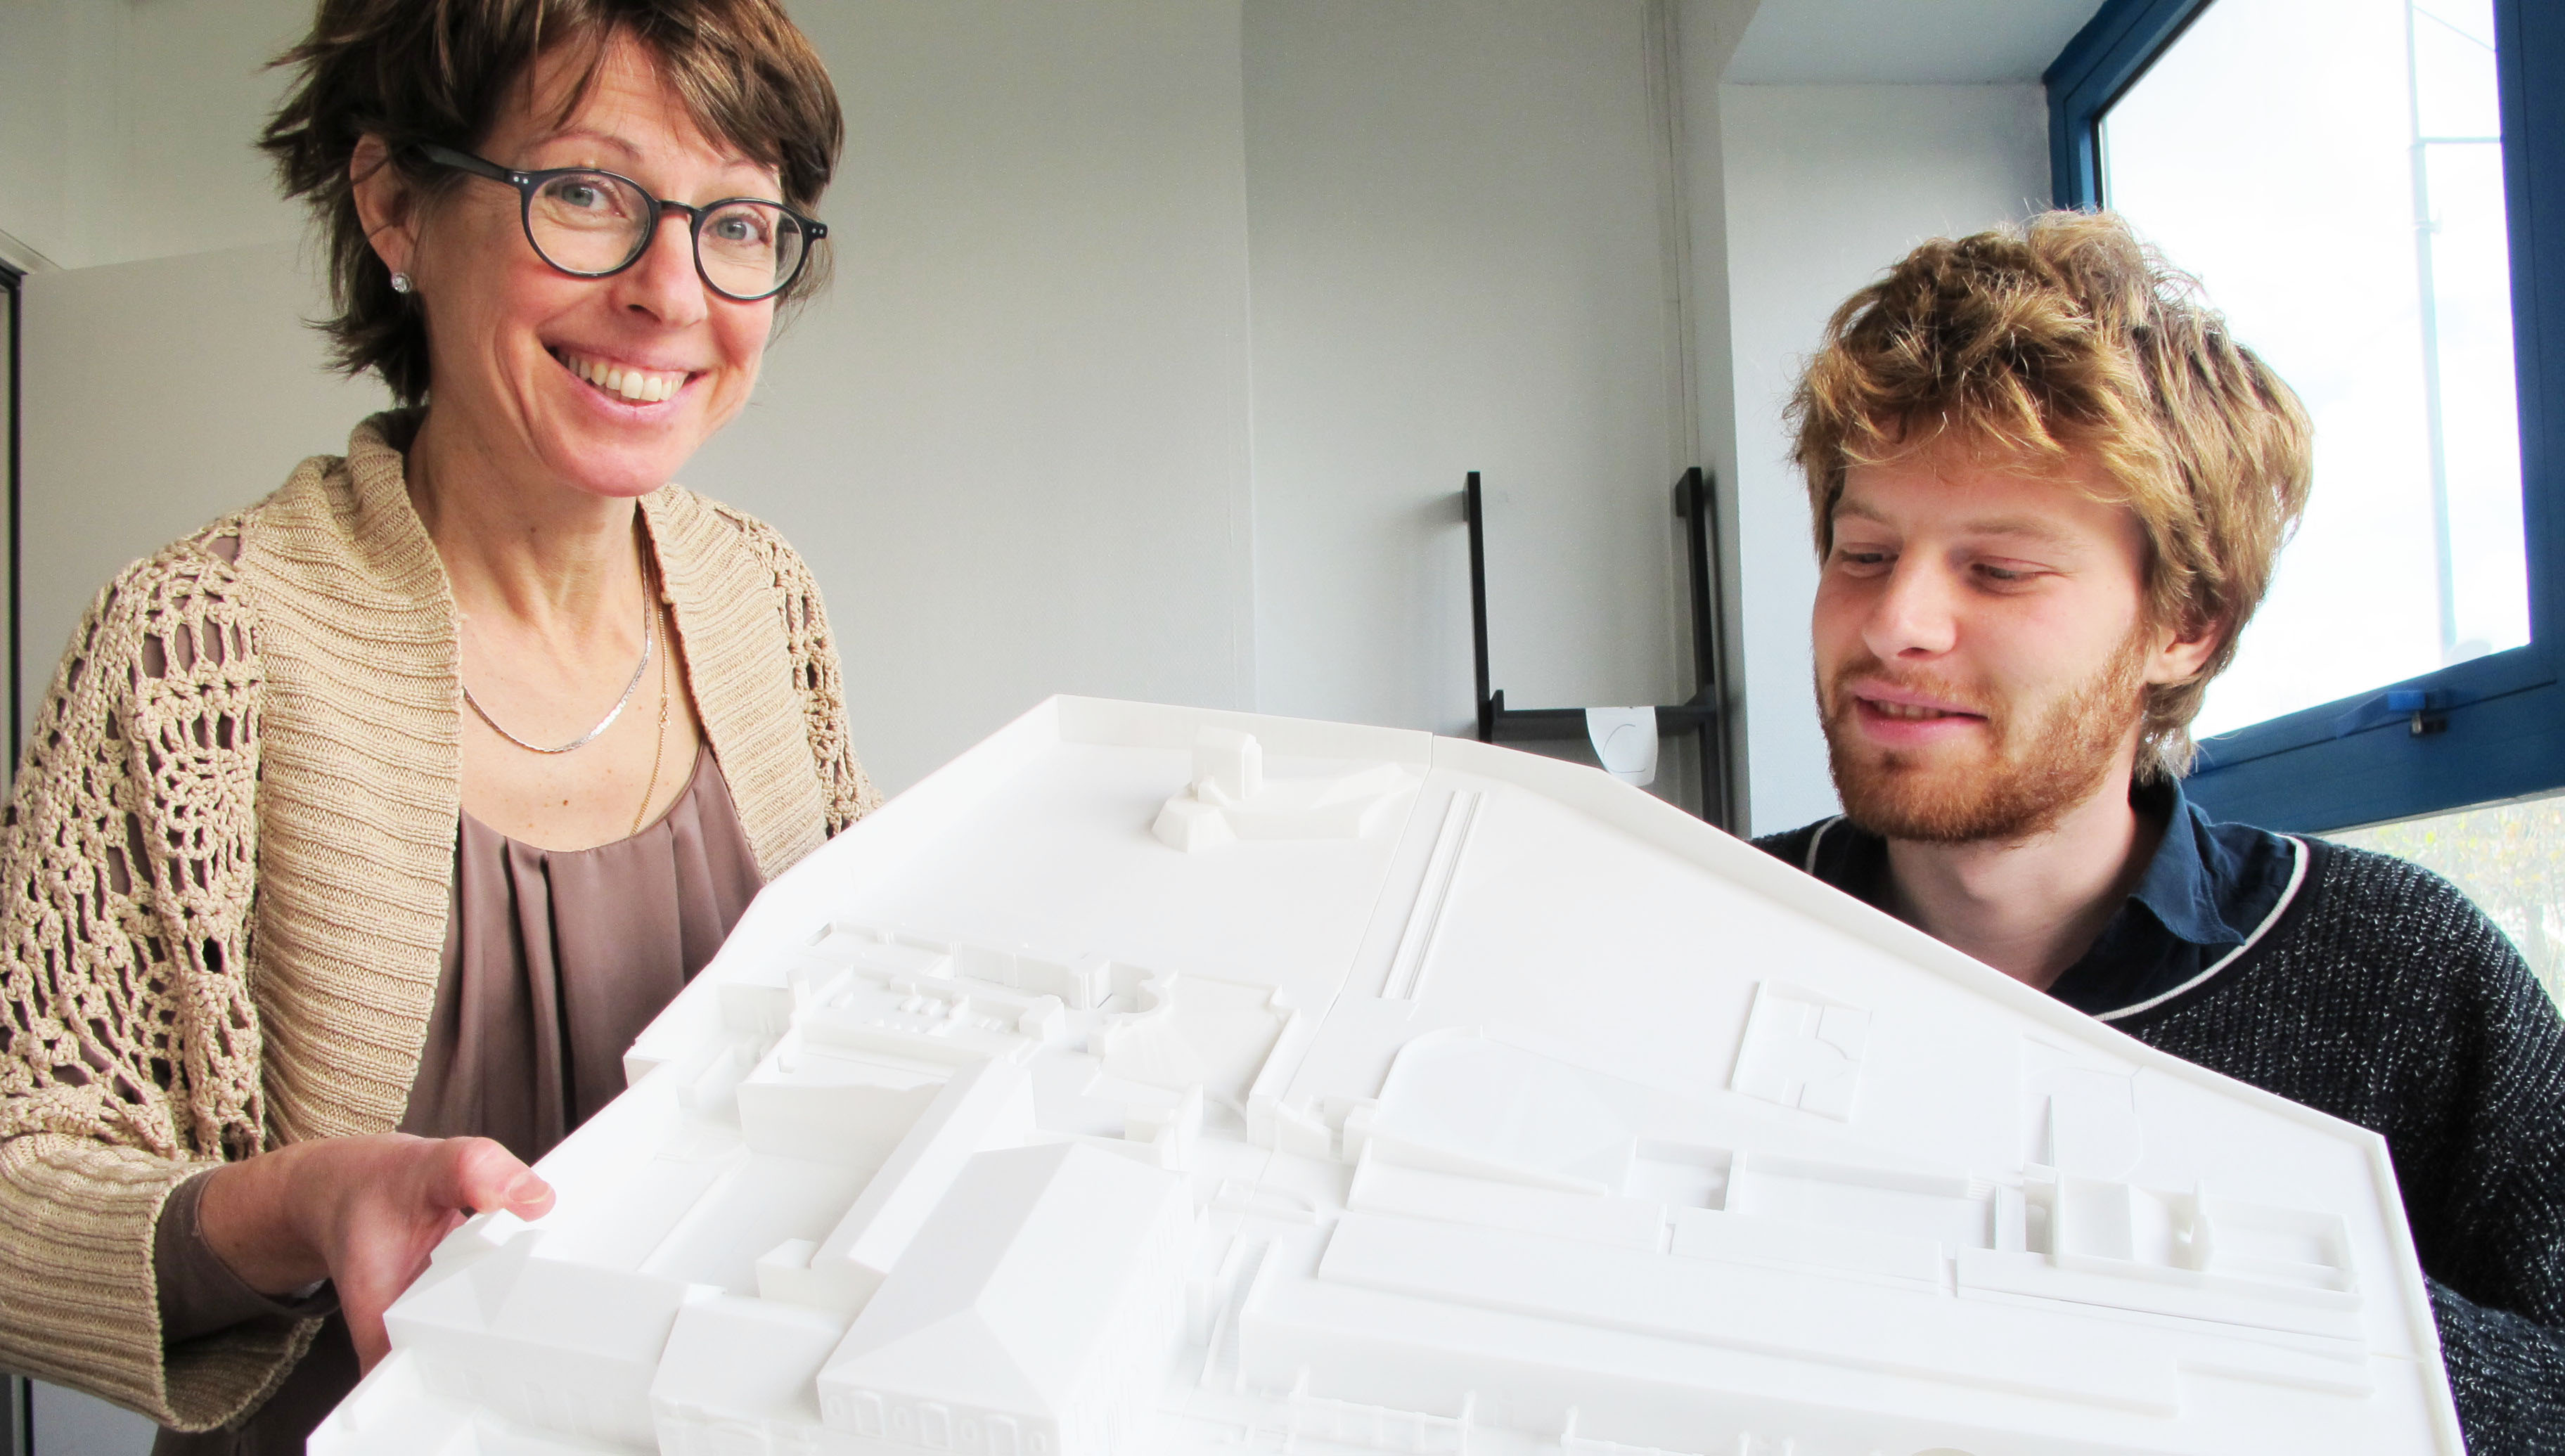 3D Printed Cultural Heritage: an abbaye model for the visually impaired